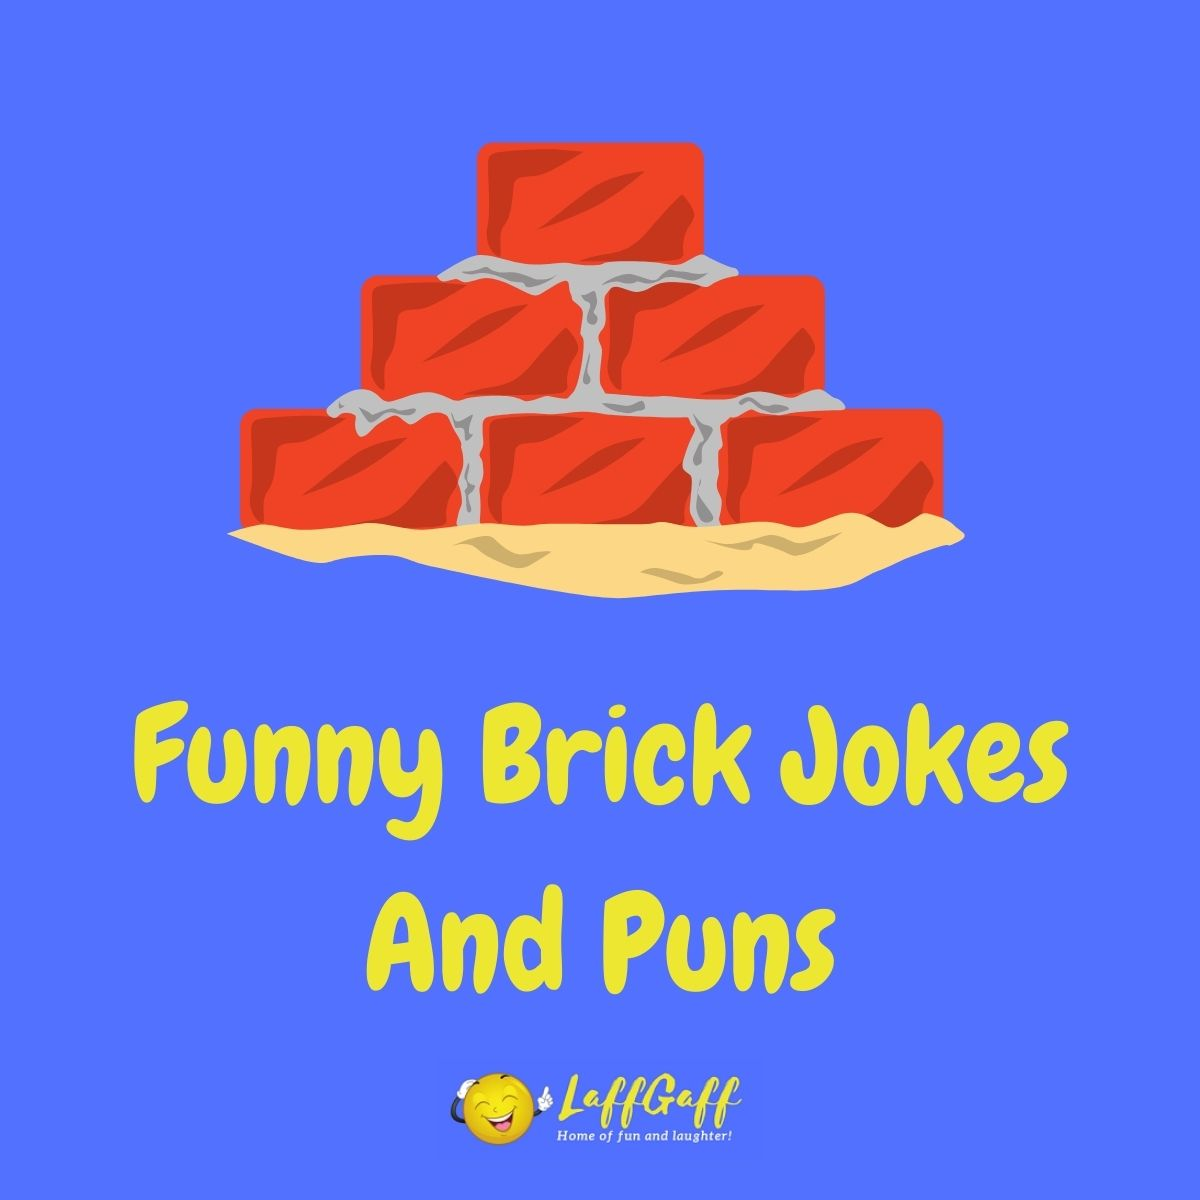 Featured image for a page of funny brick jokes and puns.